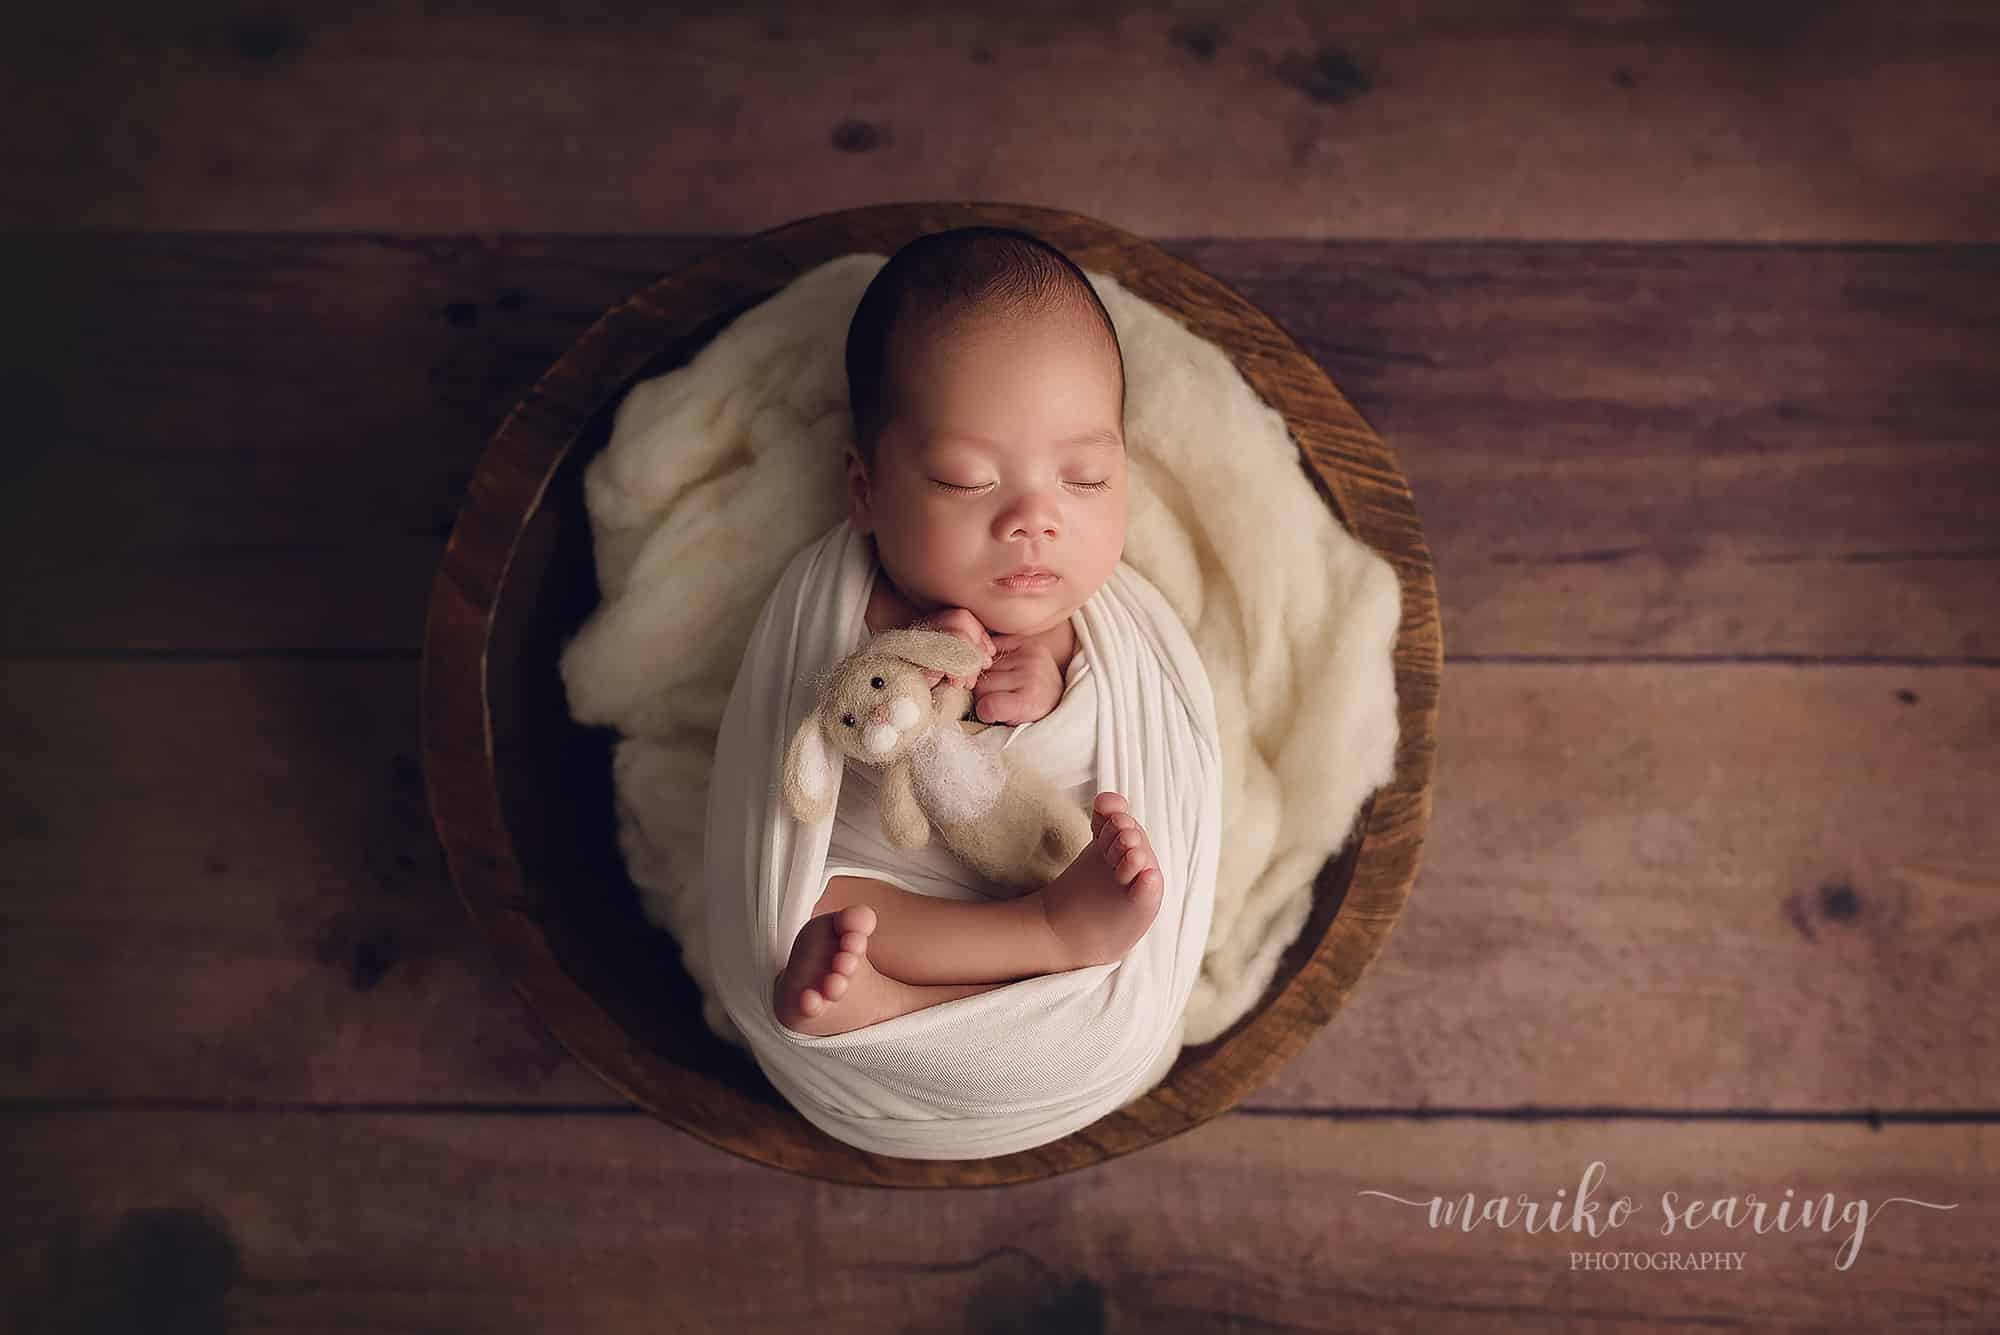 03052018 classic posed baton rouge newborn photographer white wrapped sleeping baby in bowl with felt rabbit